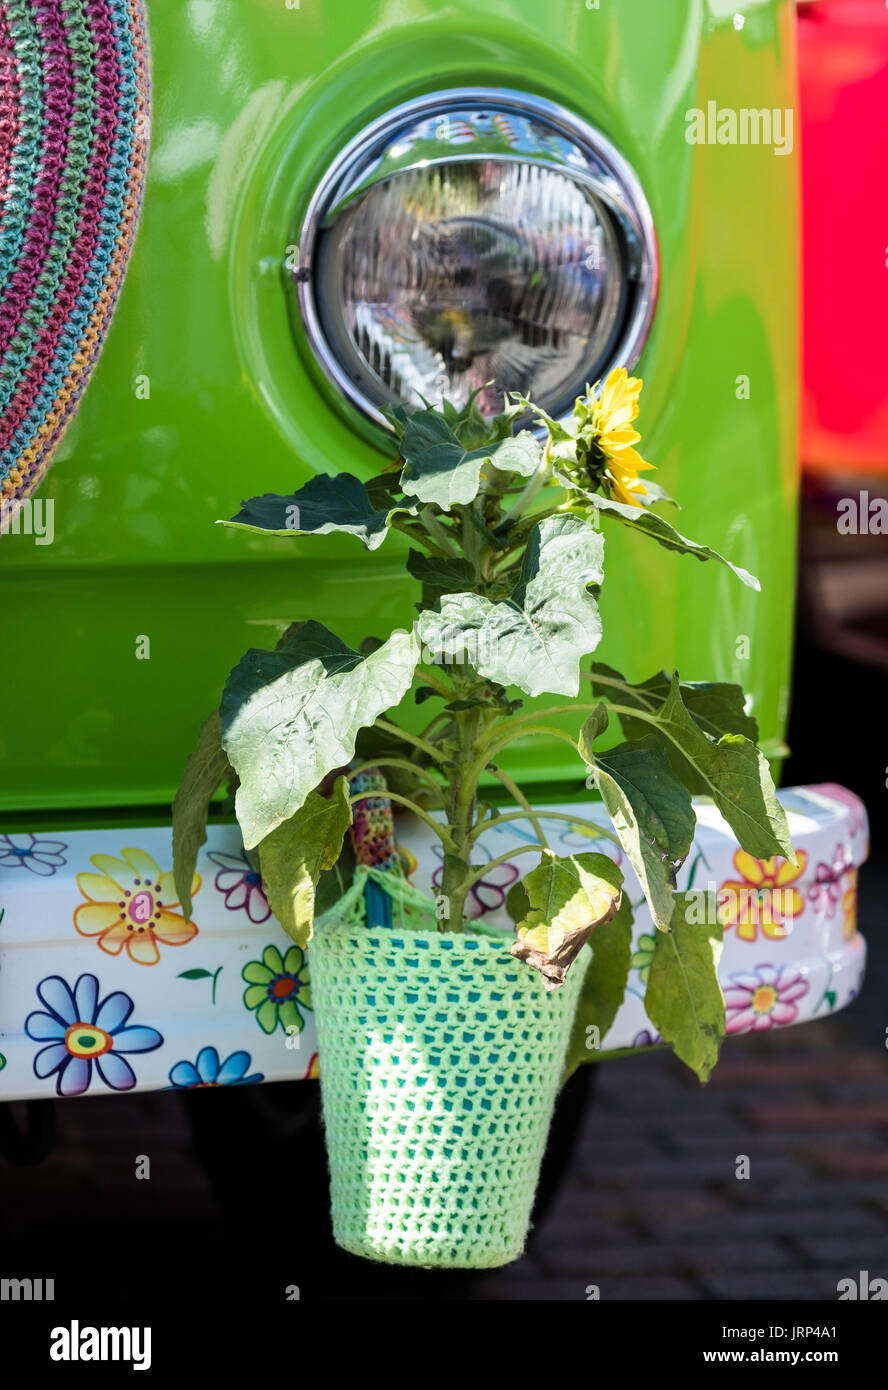 Stocken, Germany. 06th Aug, 2017. A flower hangs from the headlight of an old VW Kombi in the grounds of the Volkswagen Commercial Vehicles Plant during the Kombi Meet on the occasion of the 70th anniversary of the Volkswagen Transporter in Stocken, Germany, 06 August 2017. Photo: Peter Steffen/dpa/Alamy Live News - Stock Image